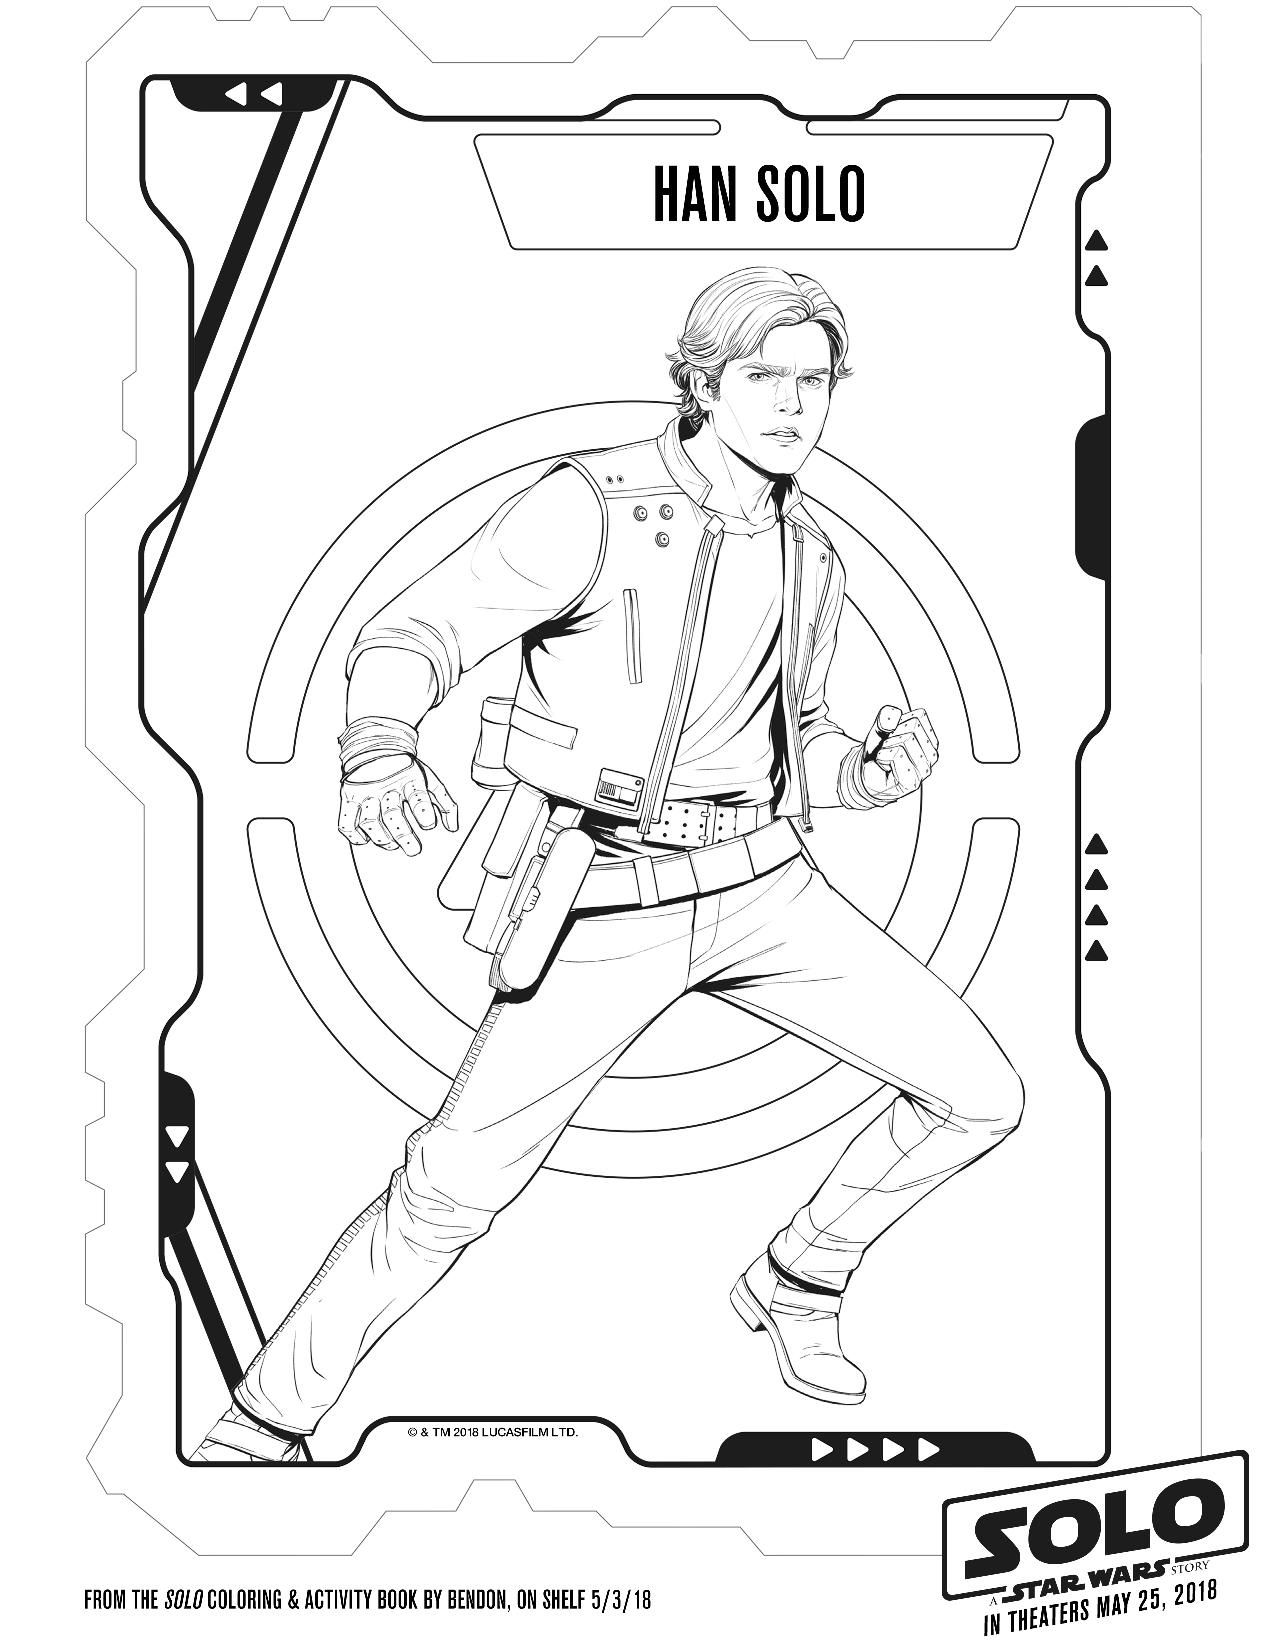 Solo A Star Wars Story Coloring Pages Hansolo Finding Sanity In Our Crazy Life Star Wars Coloring Sheet Star Wars Star Wars Colors